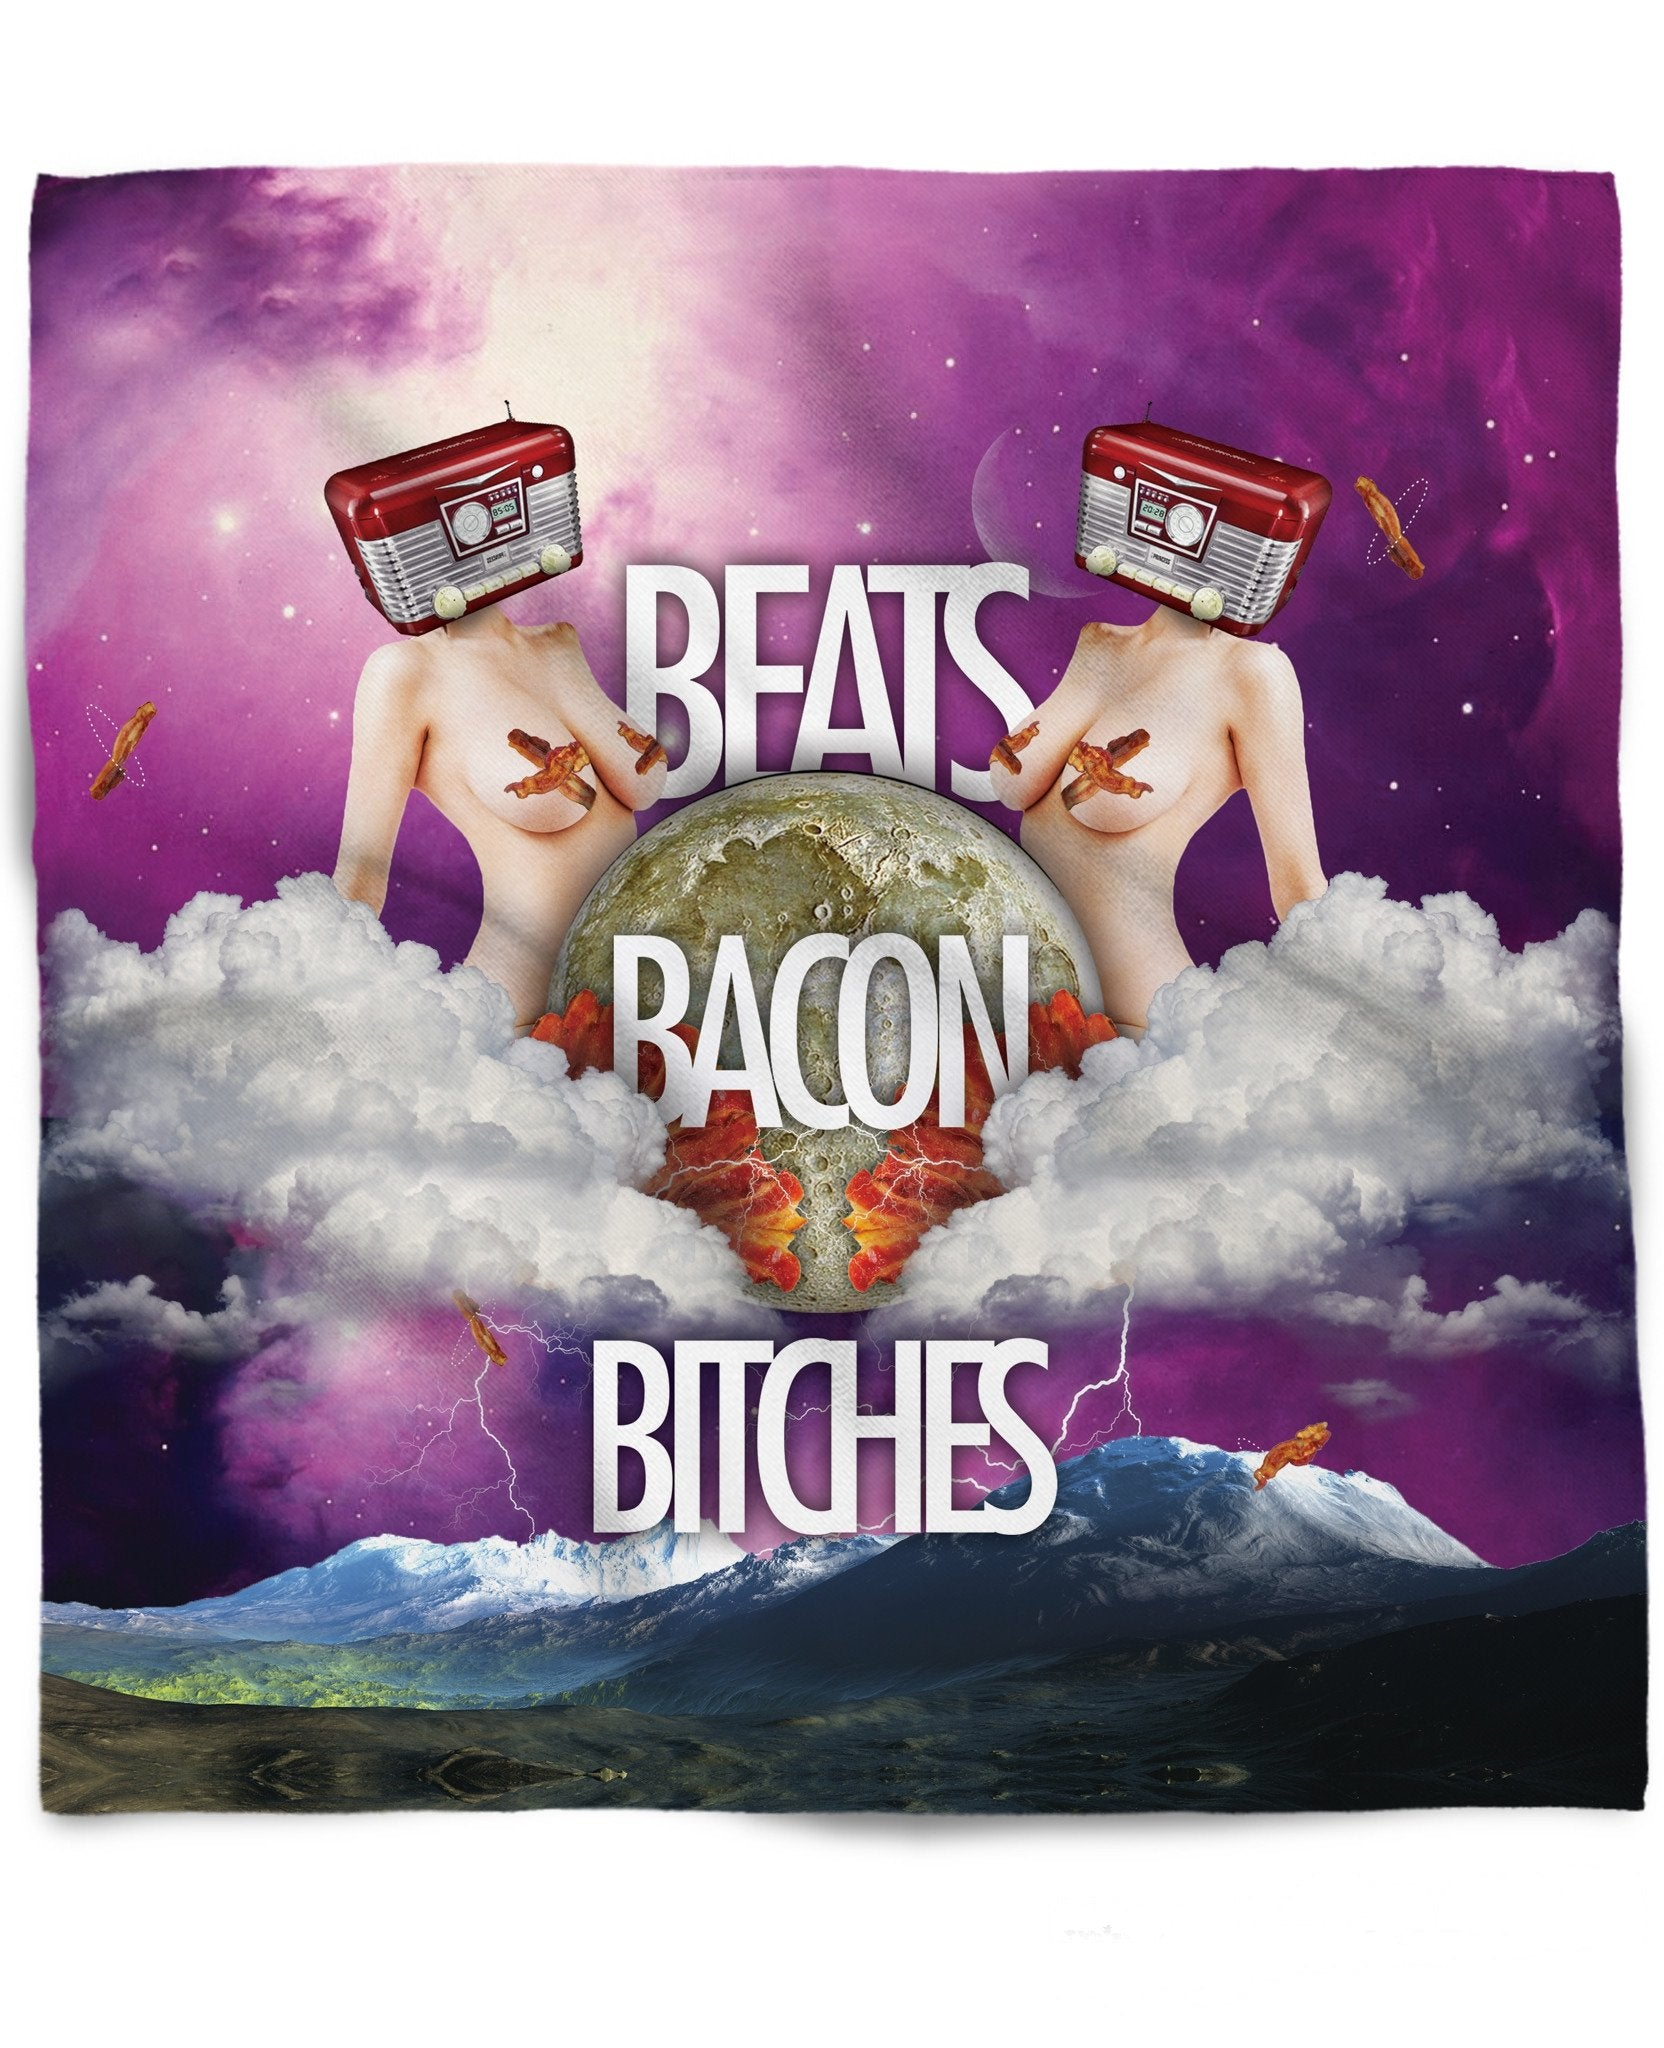 Beats Bacon Bitches Bandana